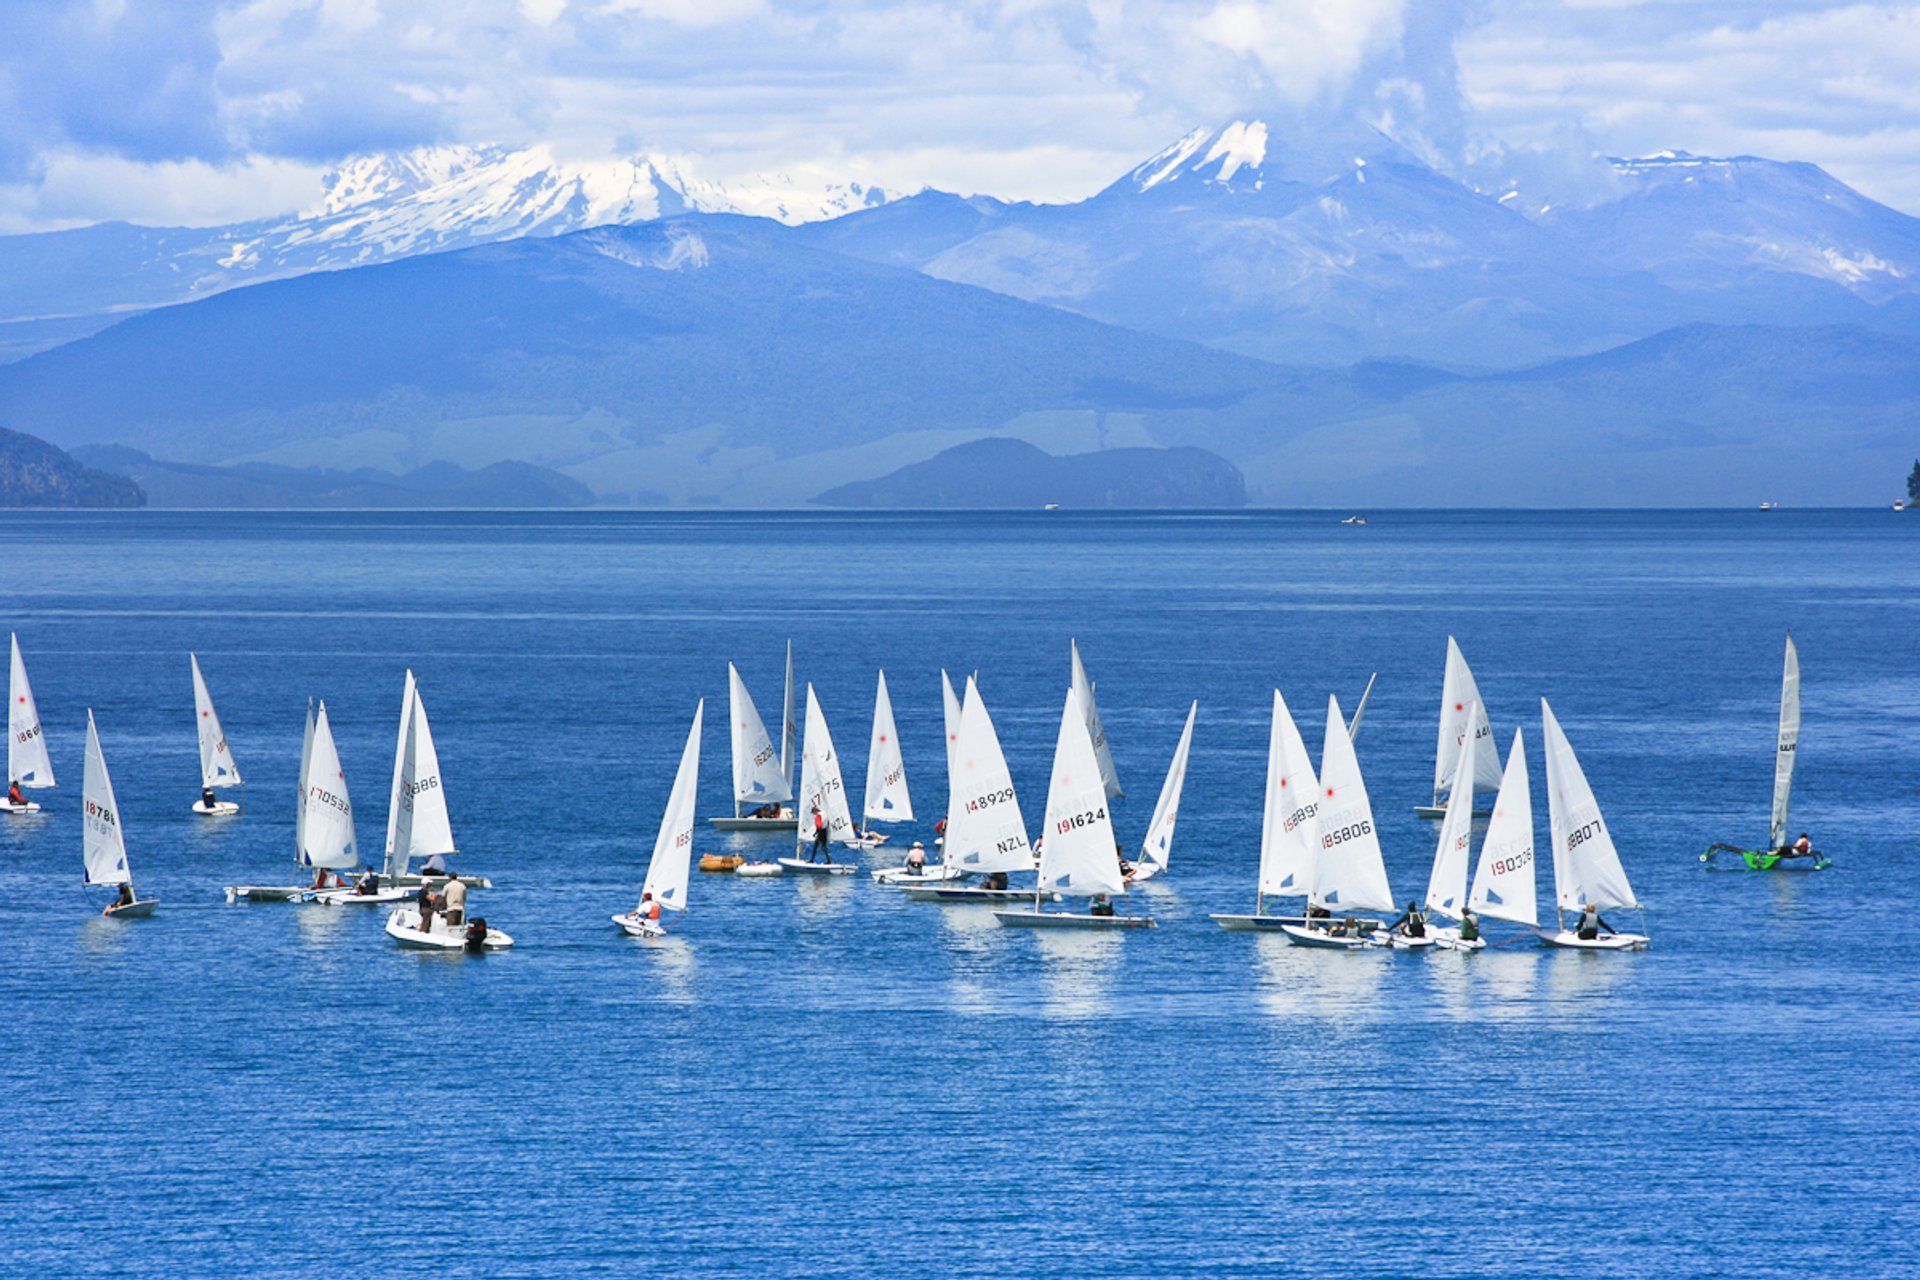 Sailing in New Zealand 2019 - Best Time